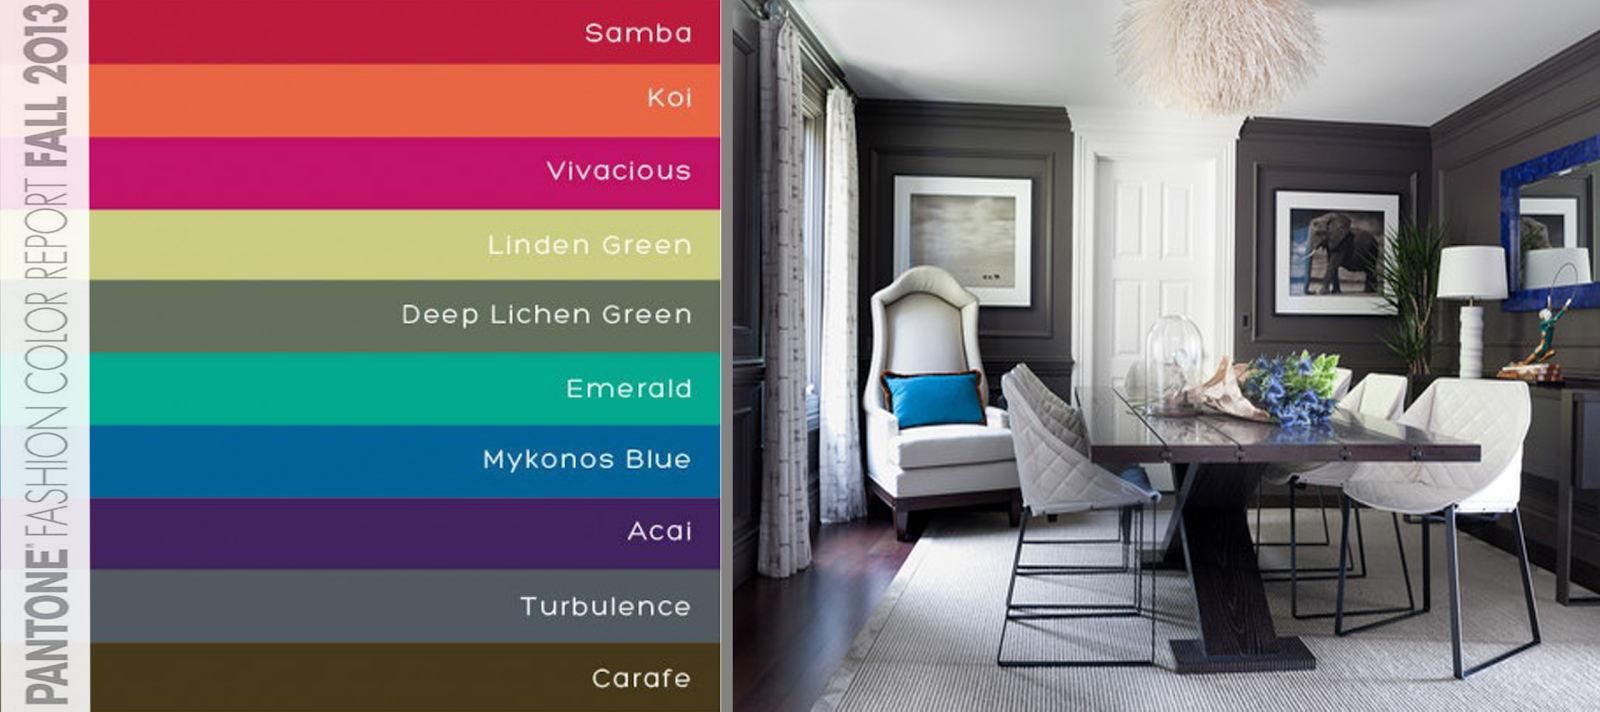 Here are some other rooms that utilize this color palette beautifully